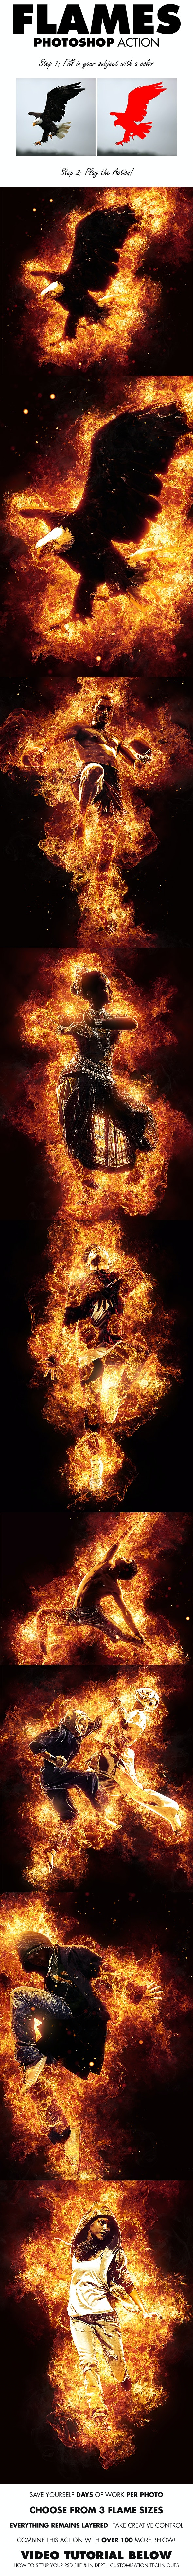 Flames Photoshop Action - Photo Effects Actions